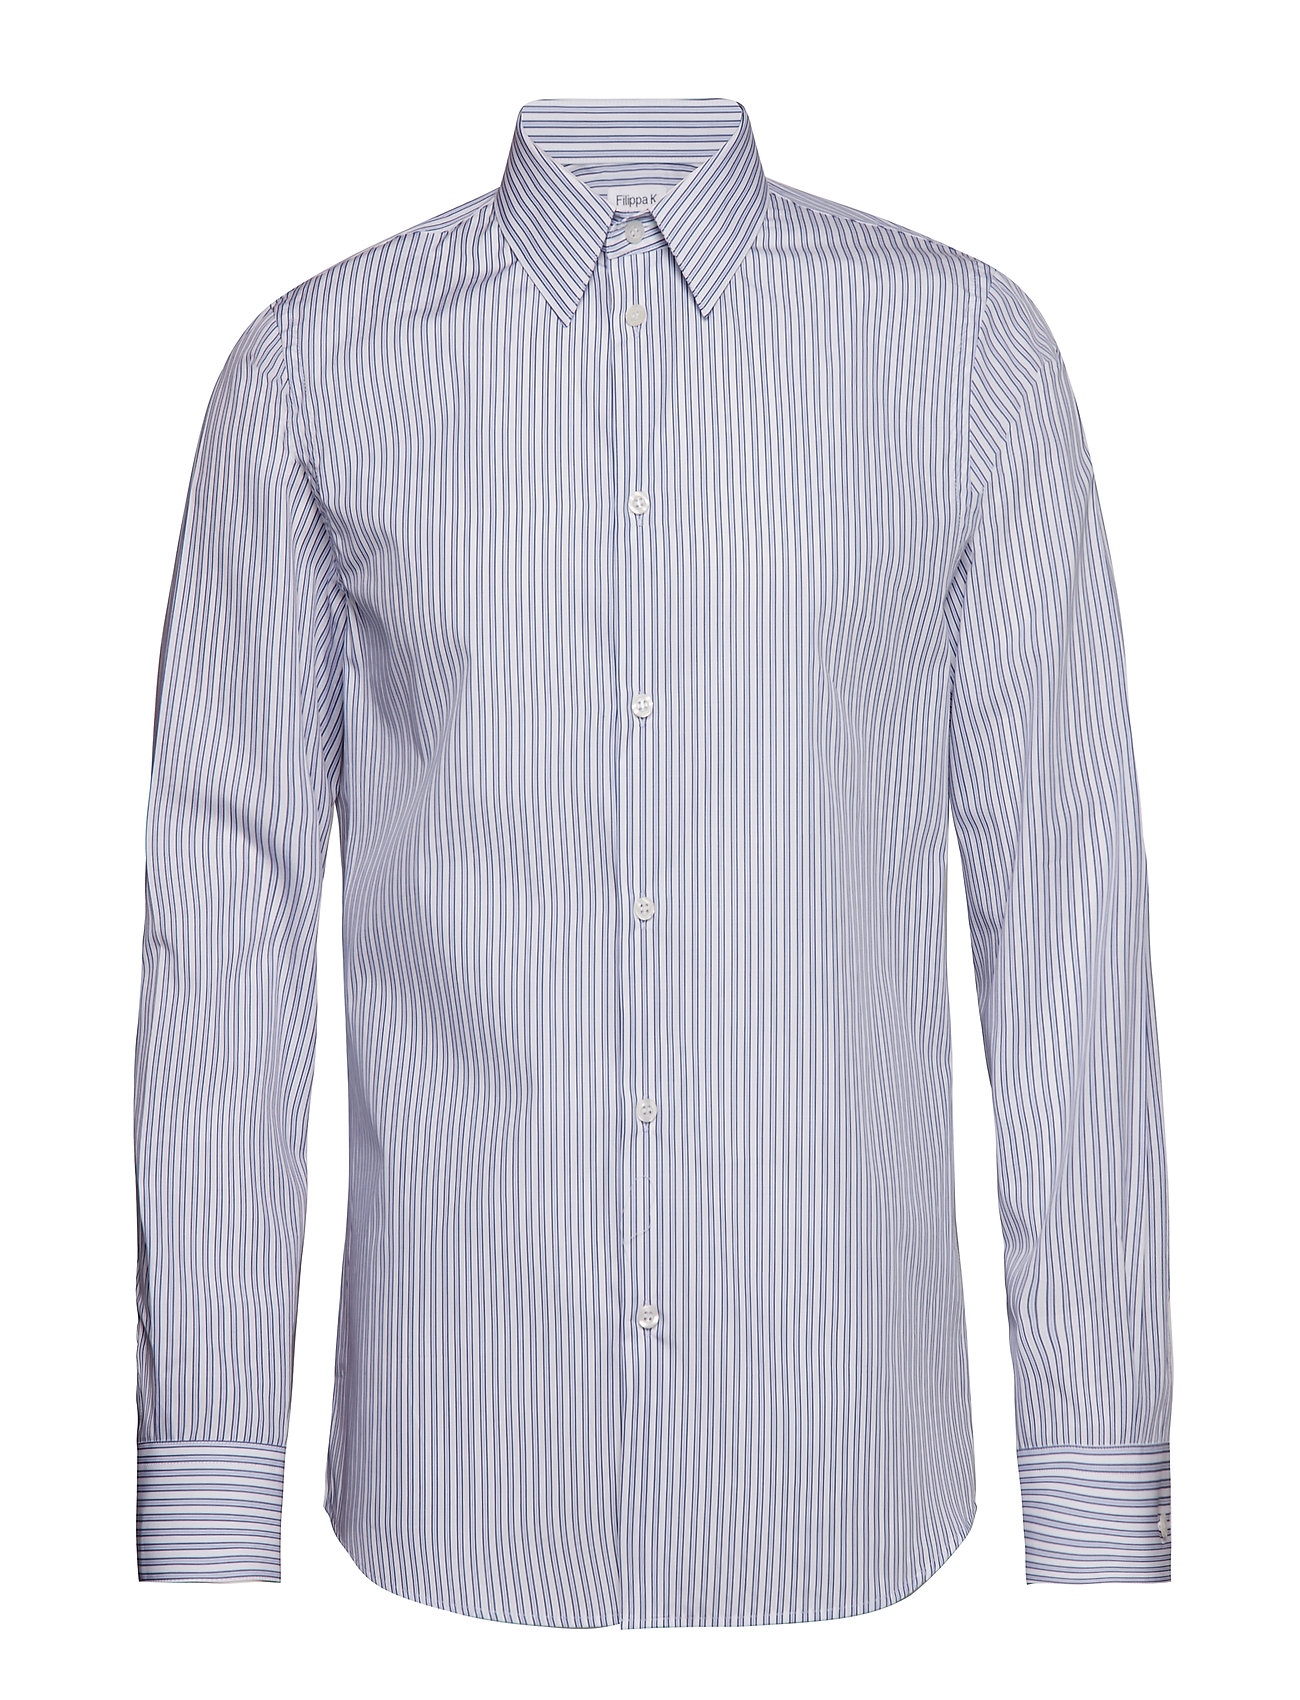 Filippa K M. James Striped Shirt - BOLD BLUE/